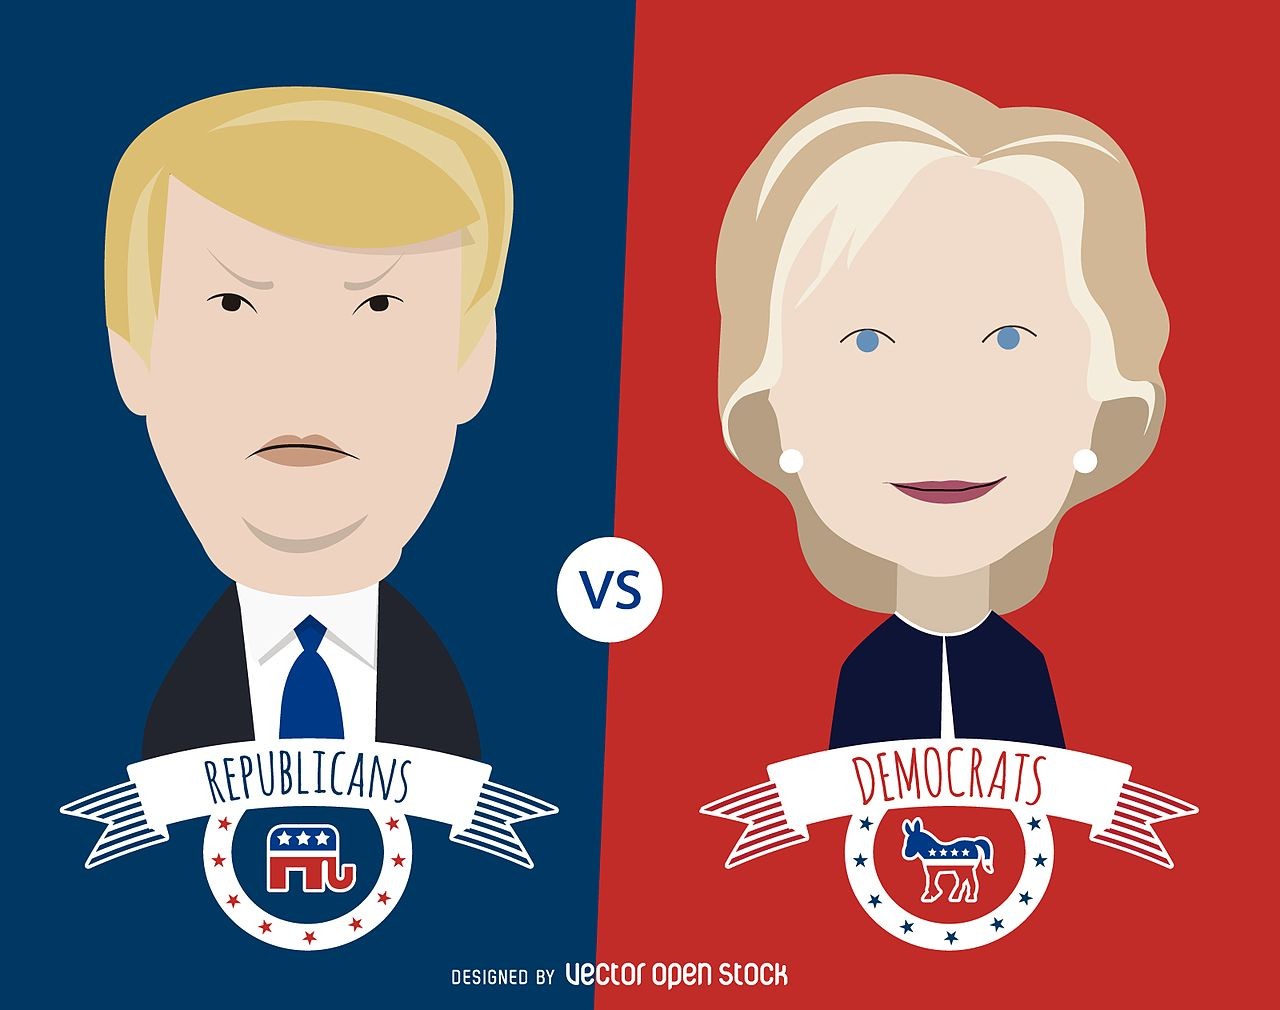 2016 Clinton and Trump VectorOpenStock  commons.wikimedia.org